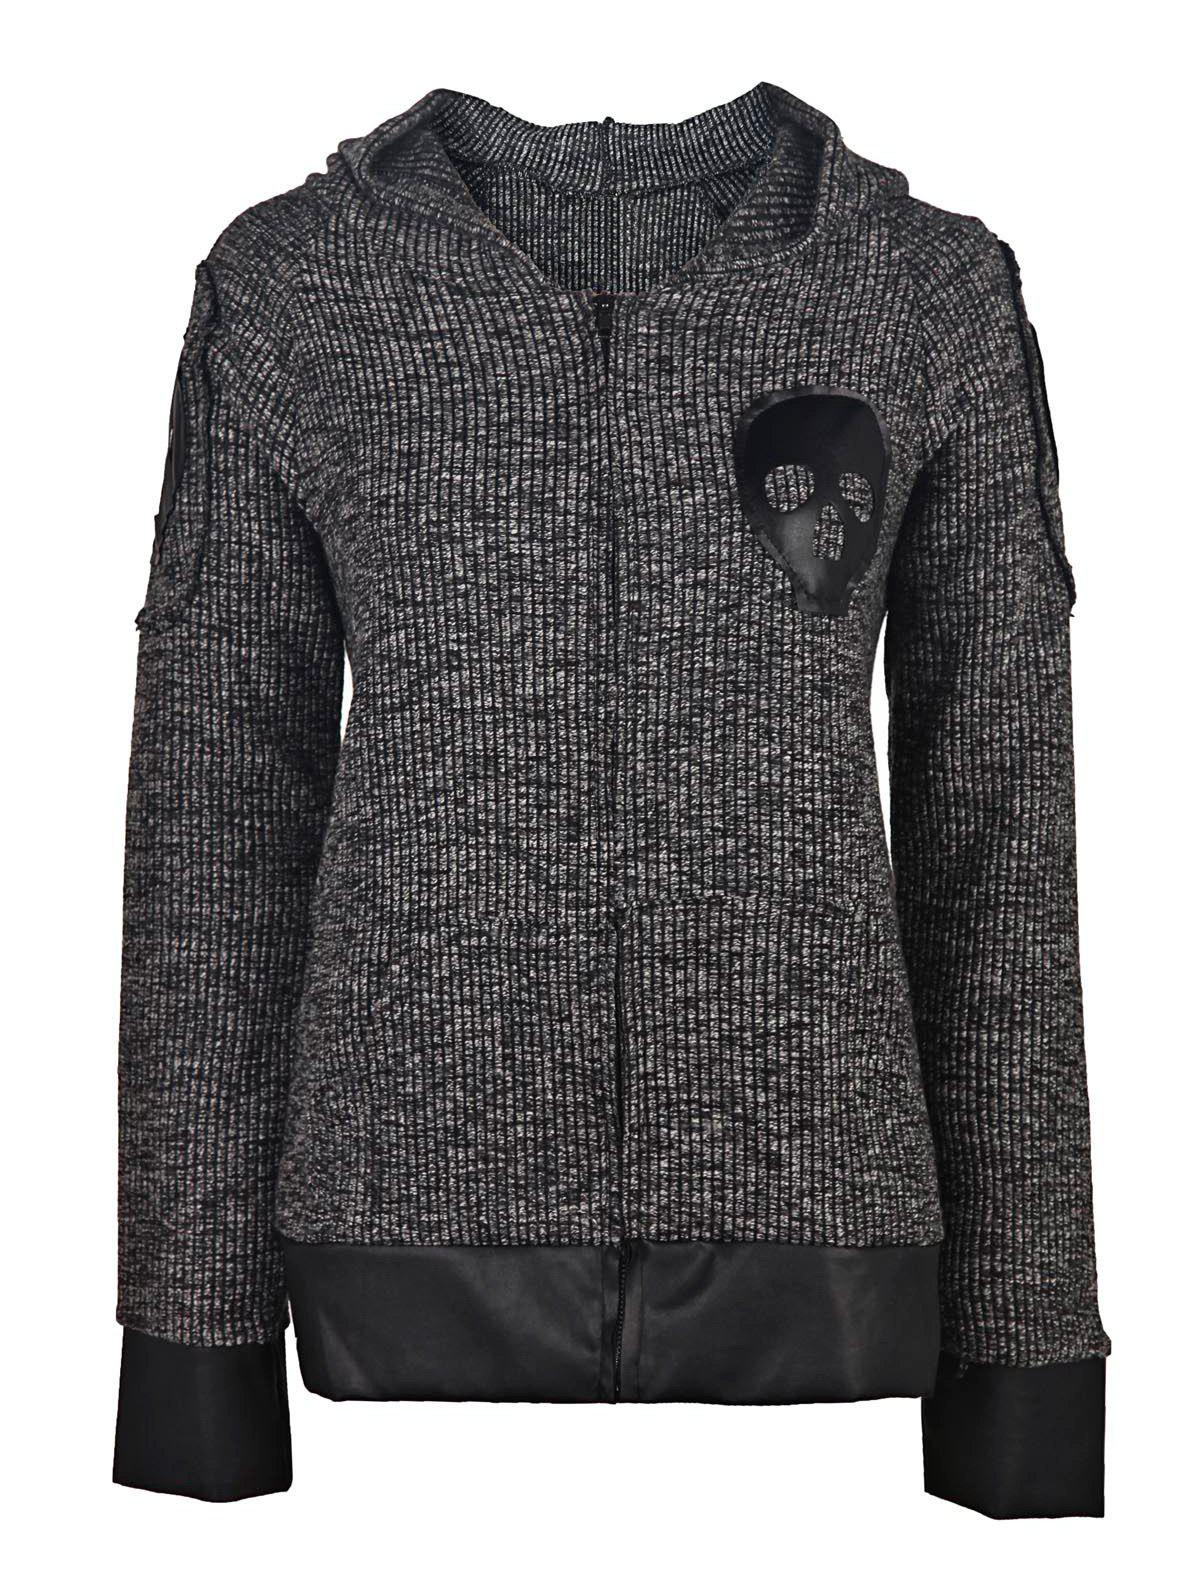 Chic Skull Printed Faux Leather Spliced Zip Up Hoodie For Women